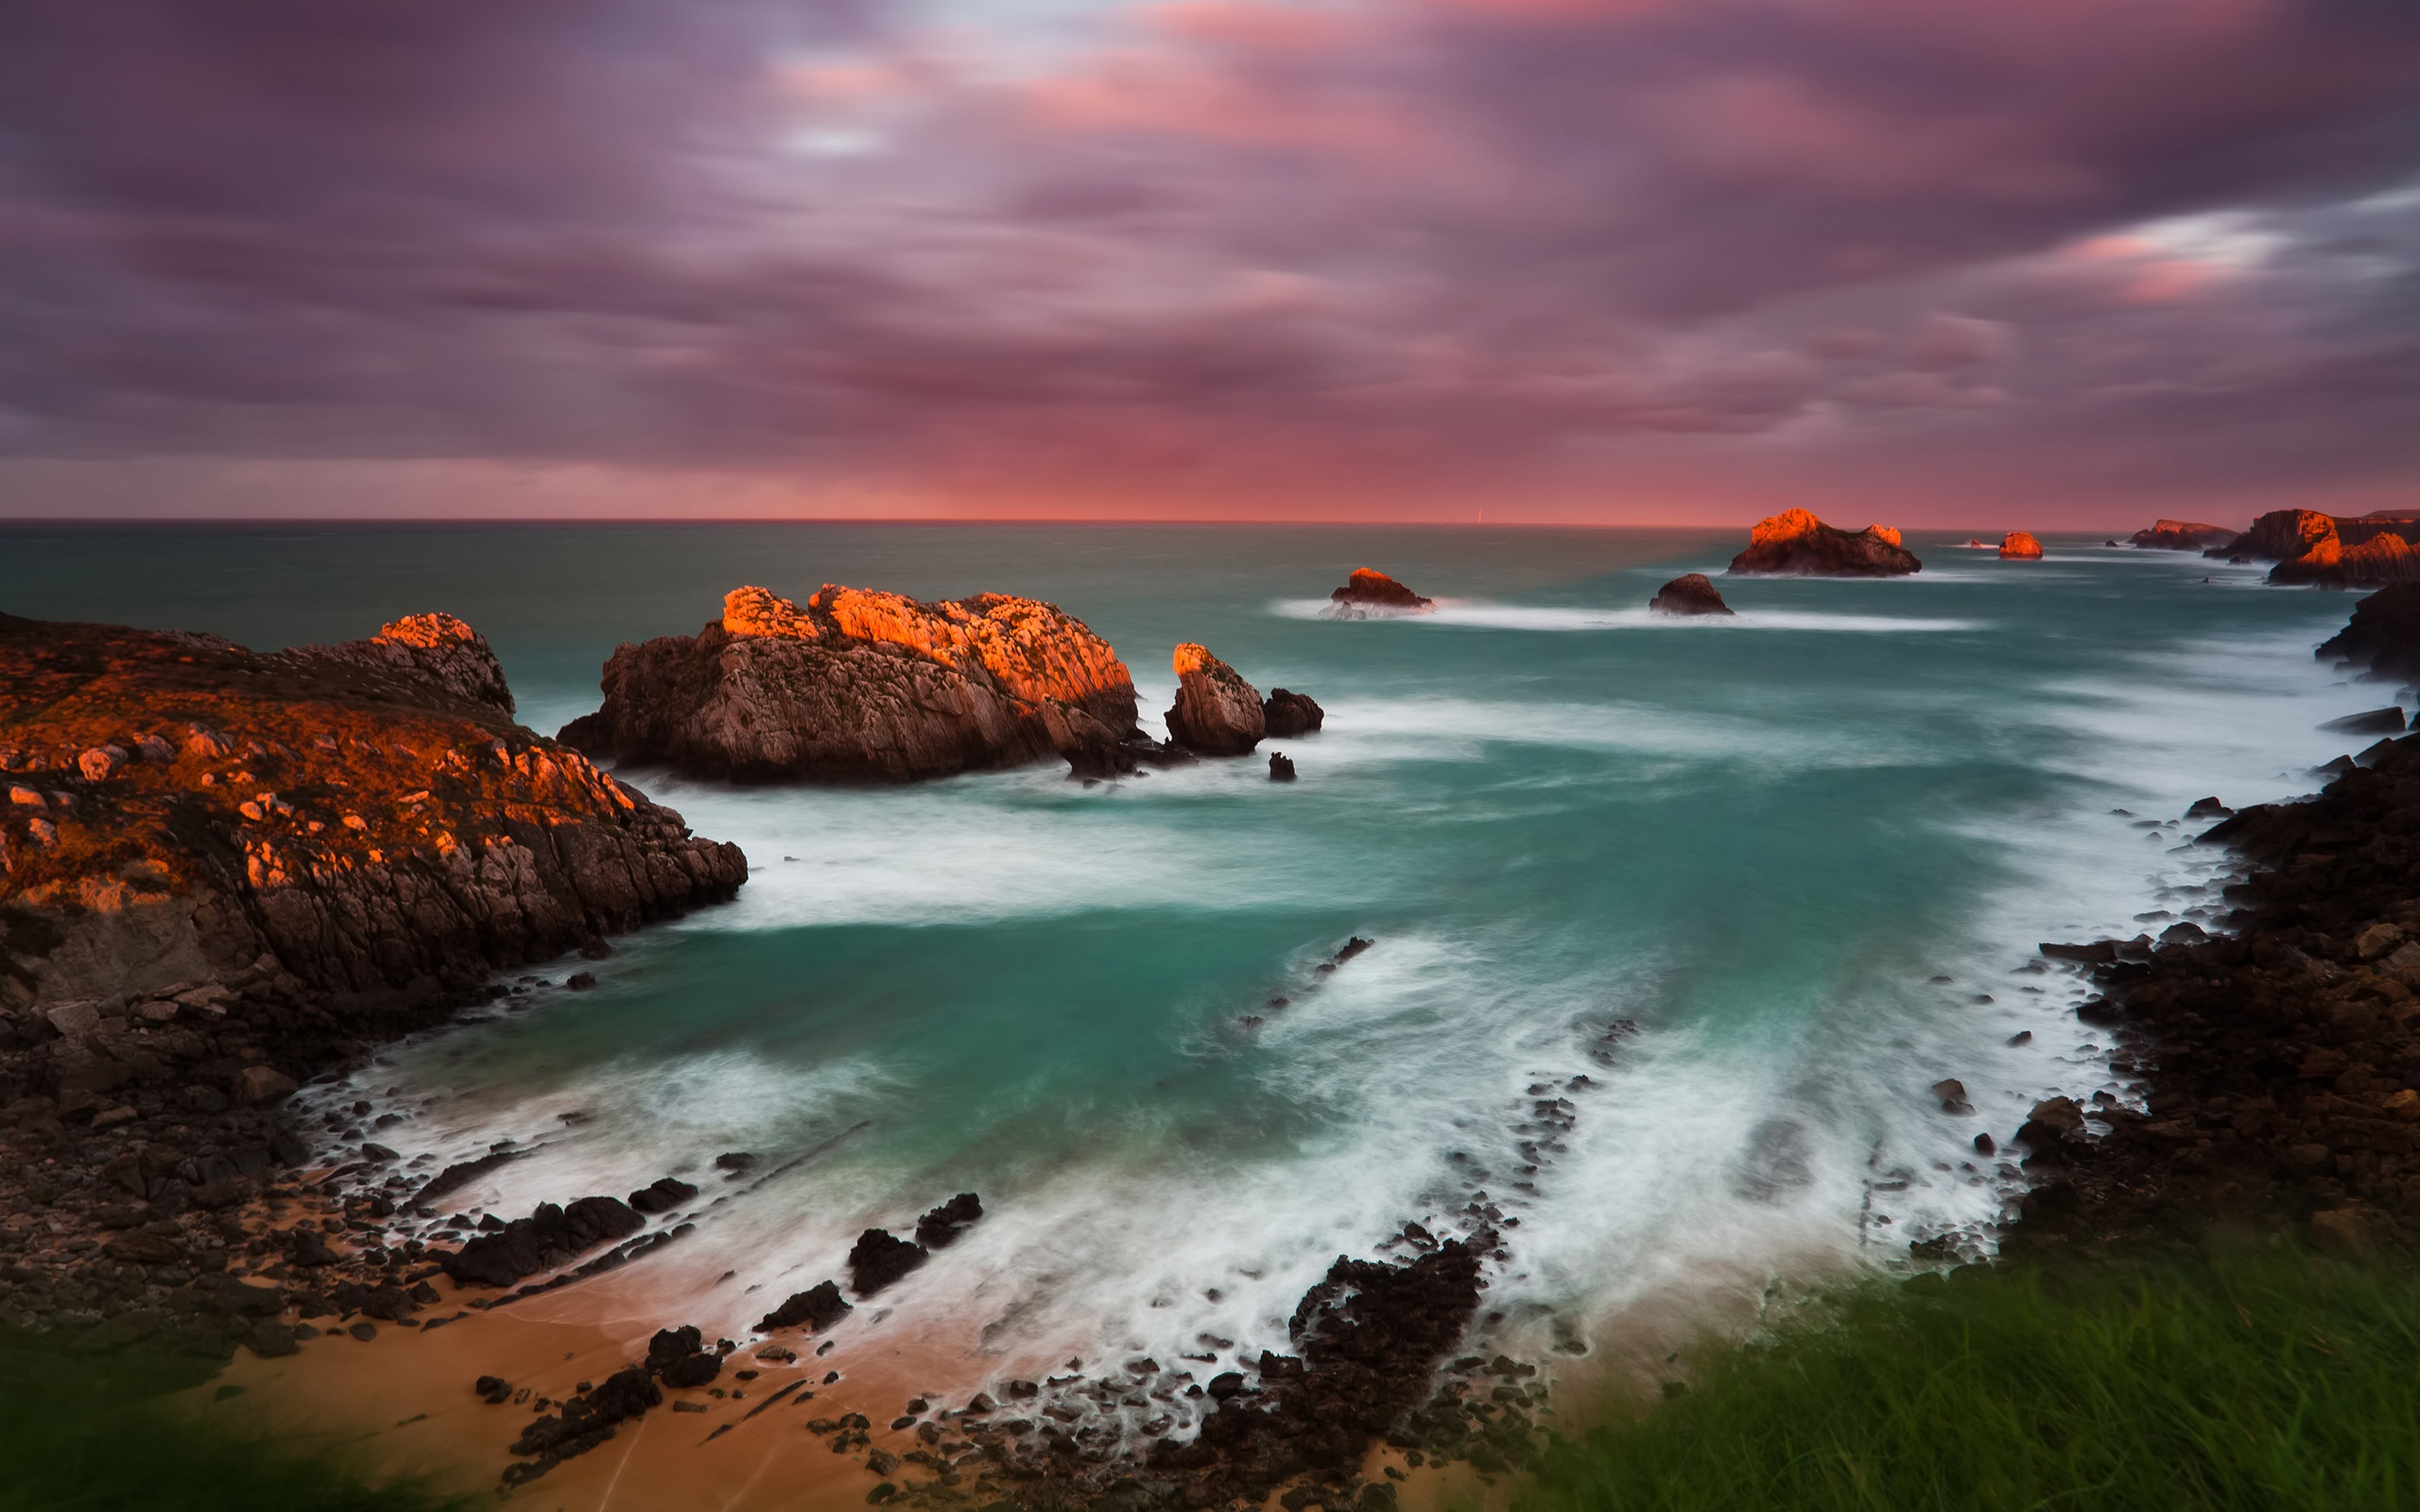 Spain Cantabria sunset wallpaper - 2560x1600